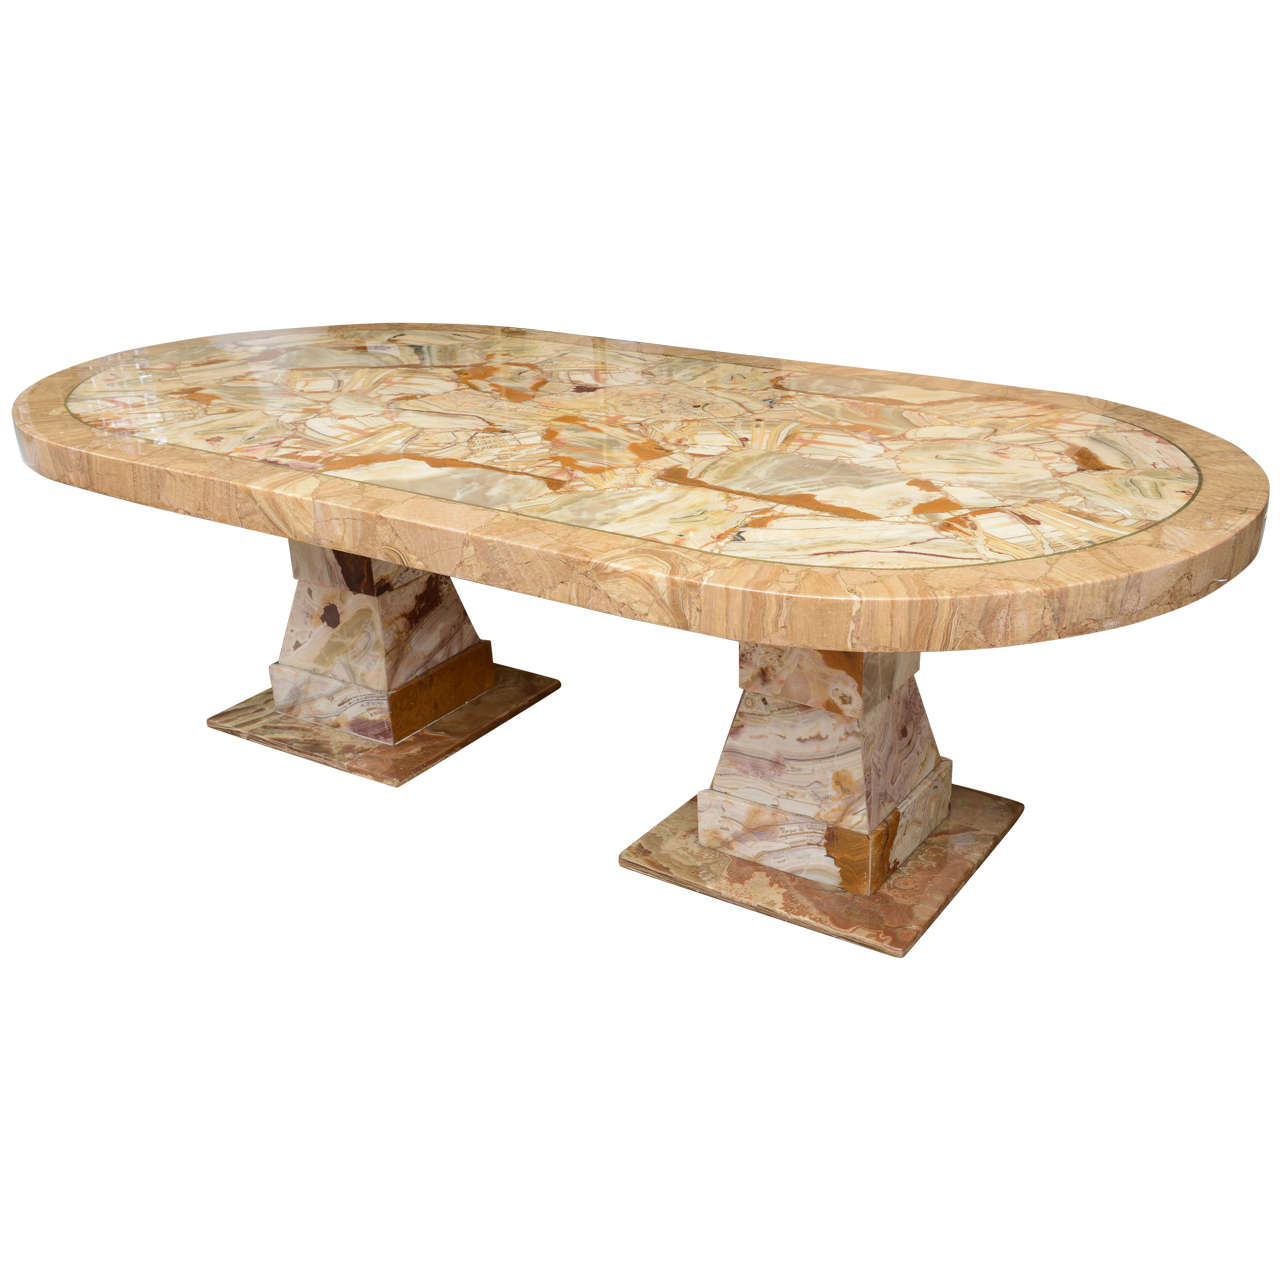 Onyx Racetrack Shaped Dining Table At 1stdibs